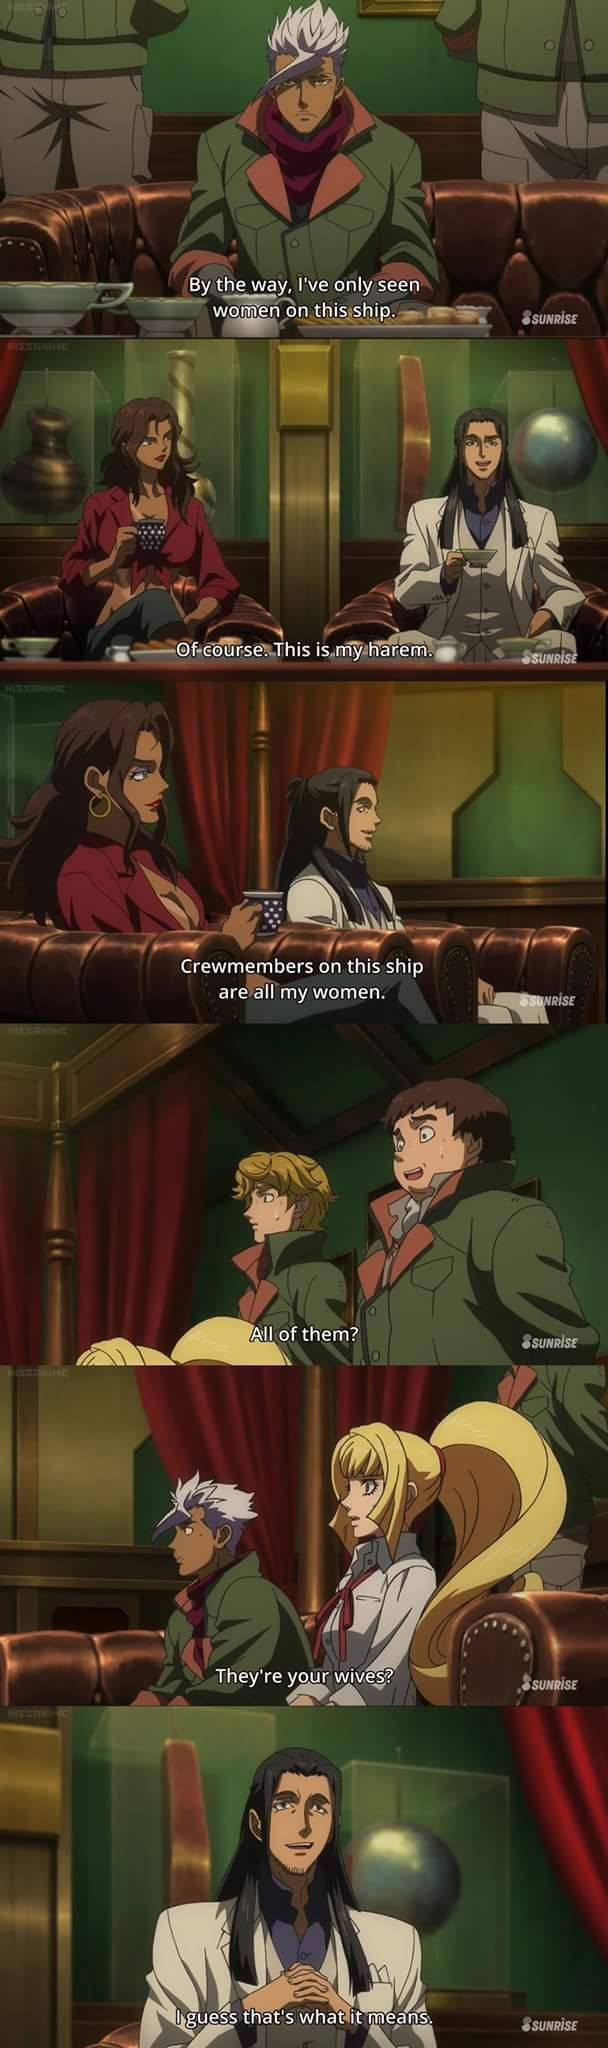 The Harem King | Gundam: Iron Blooded Orphans